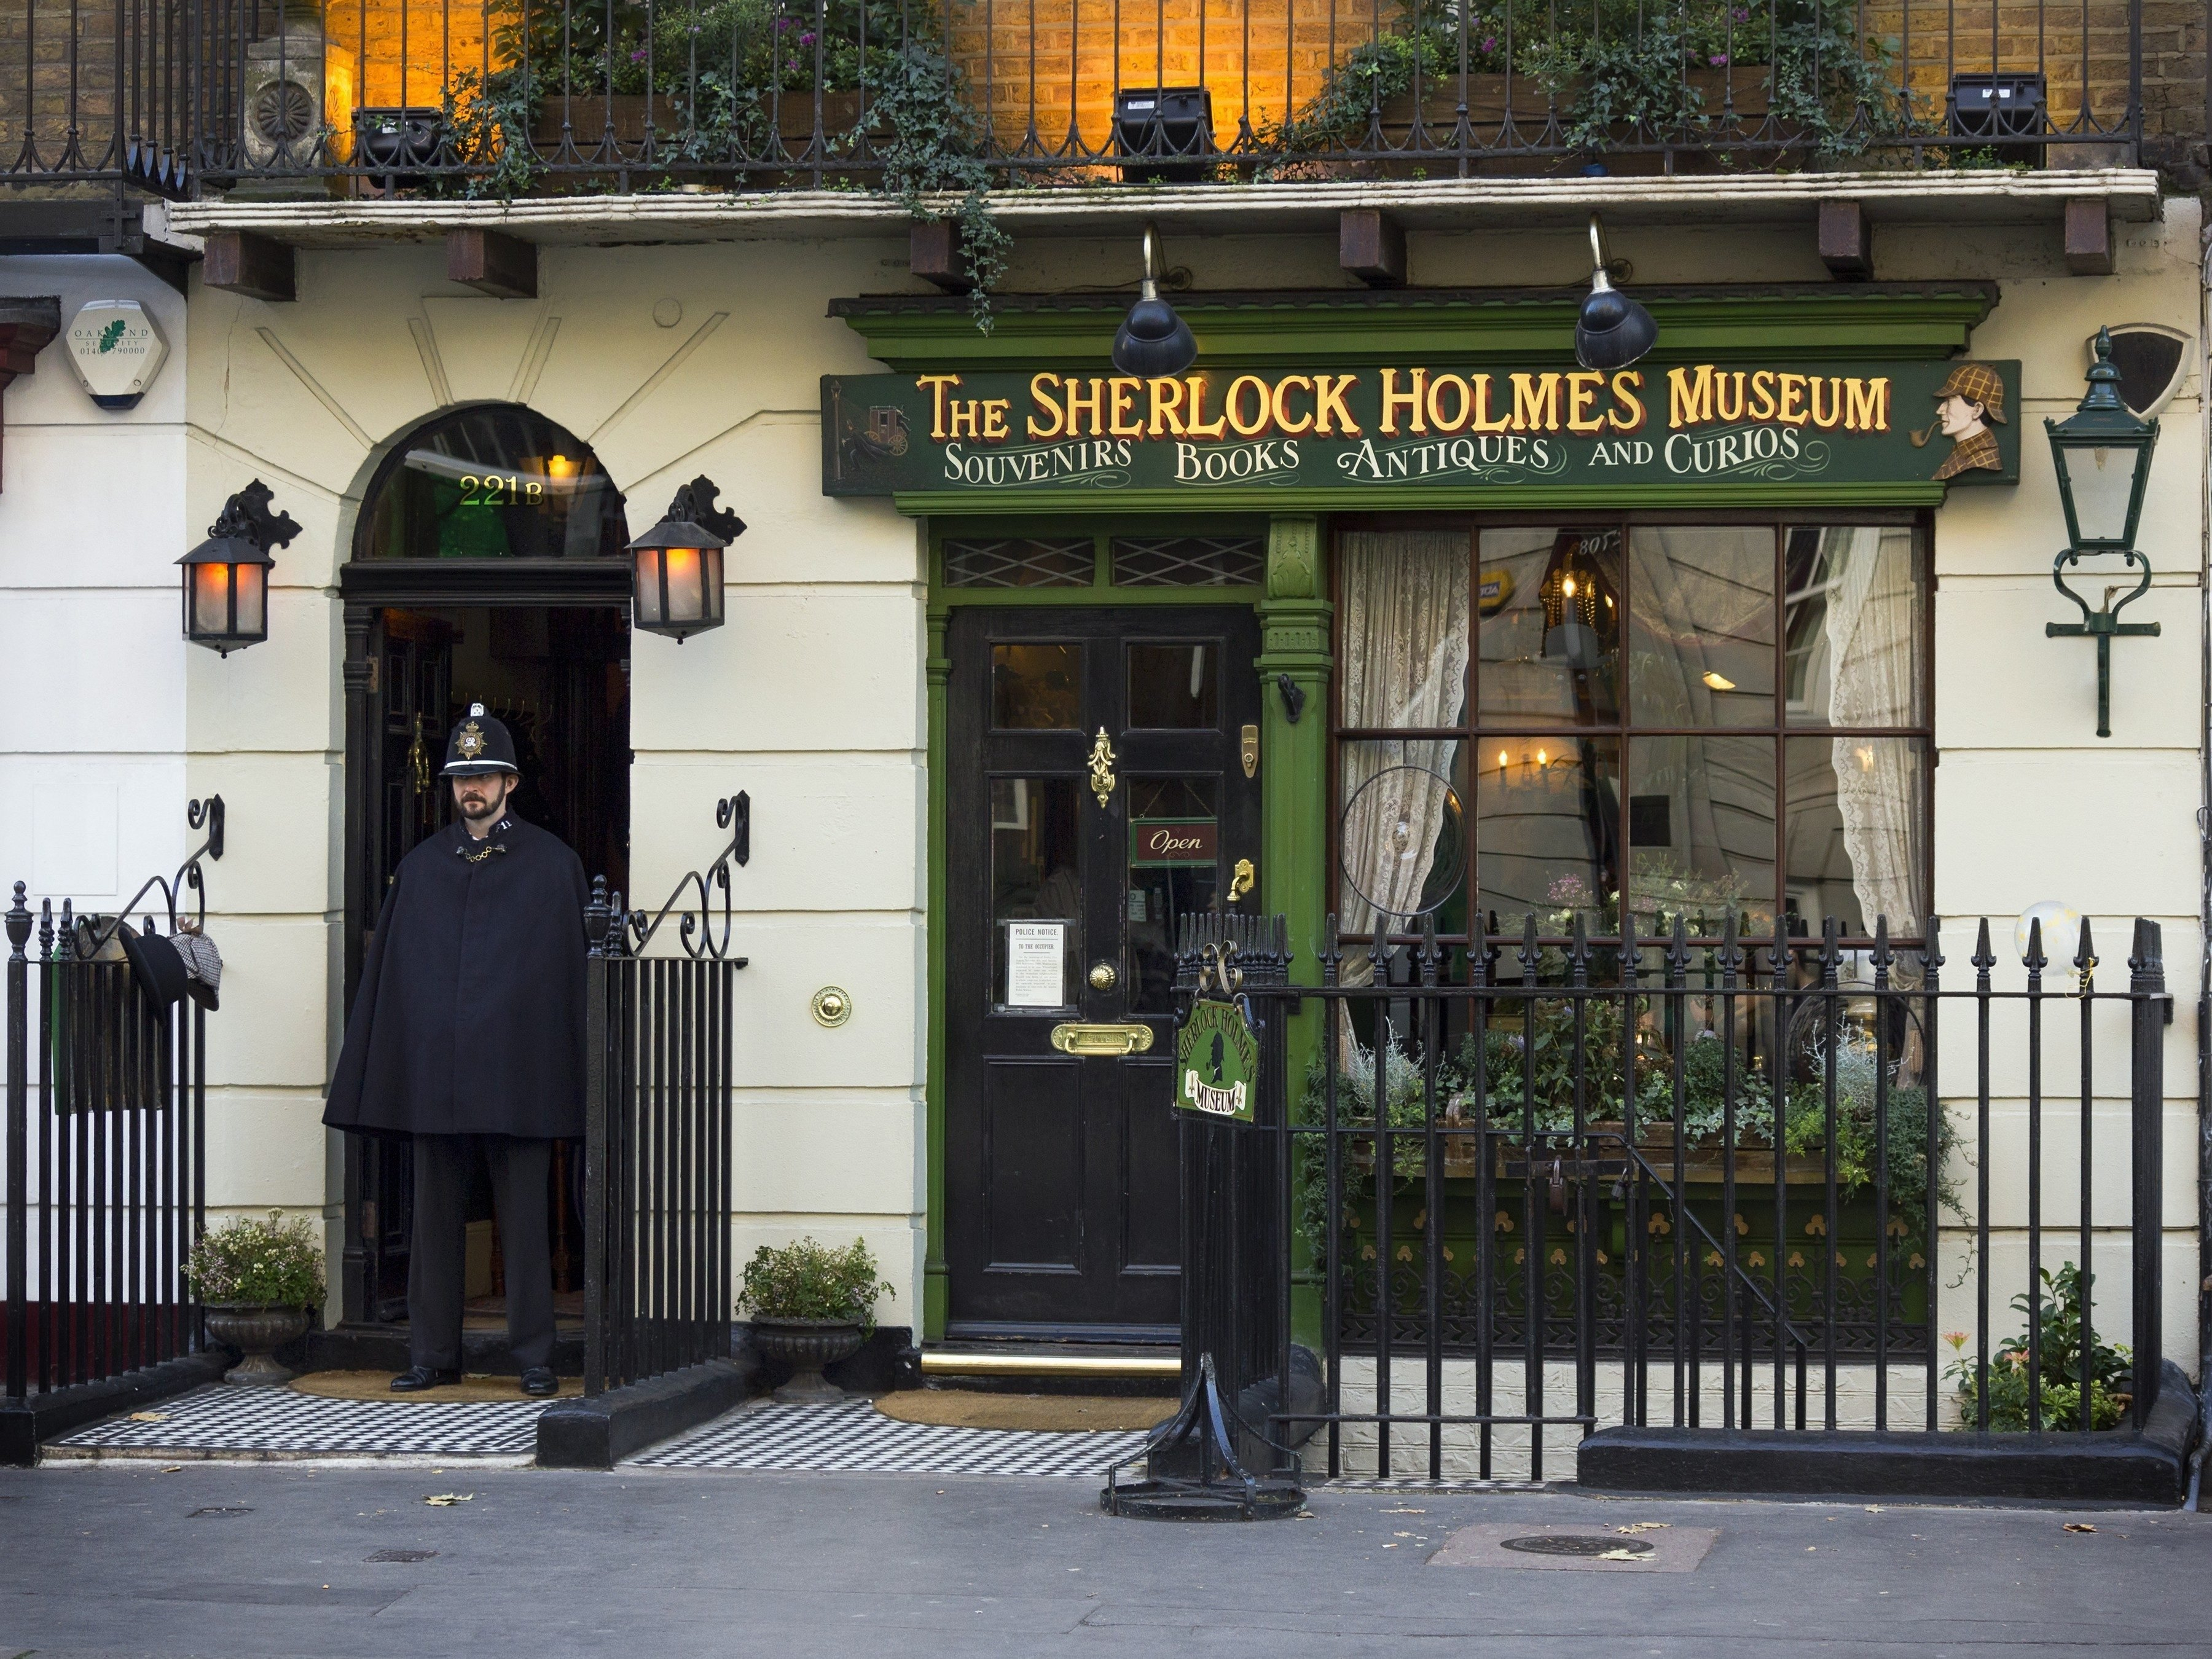 London attractions: Sherlock Holmes